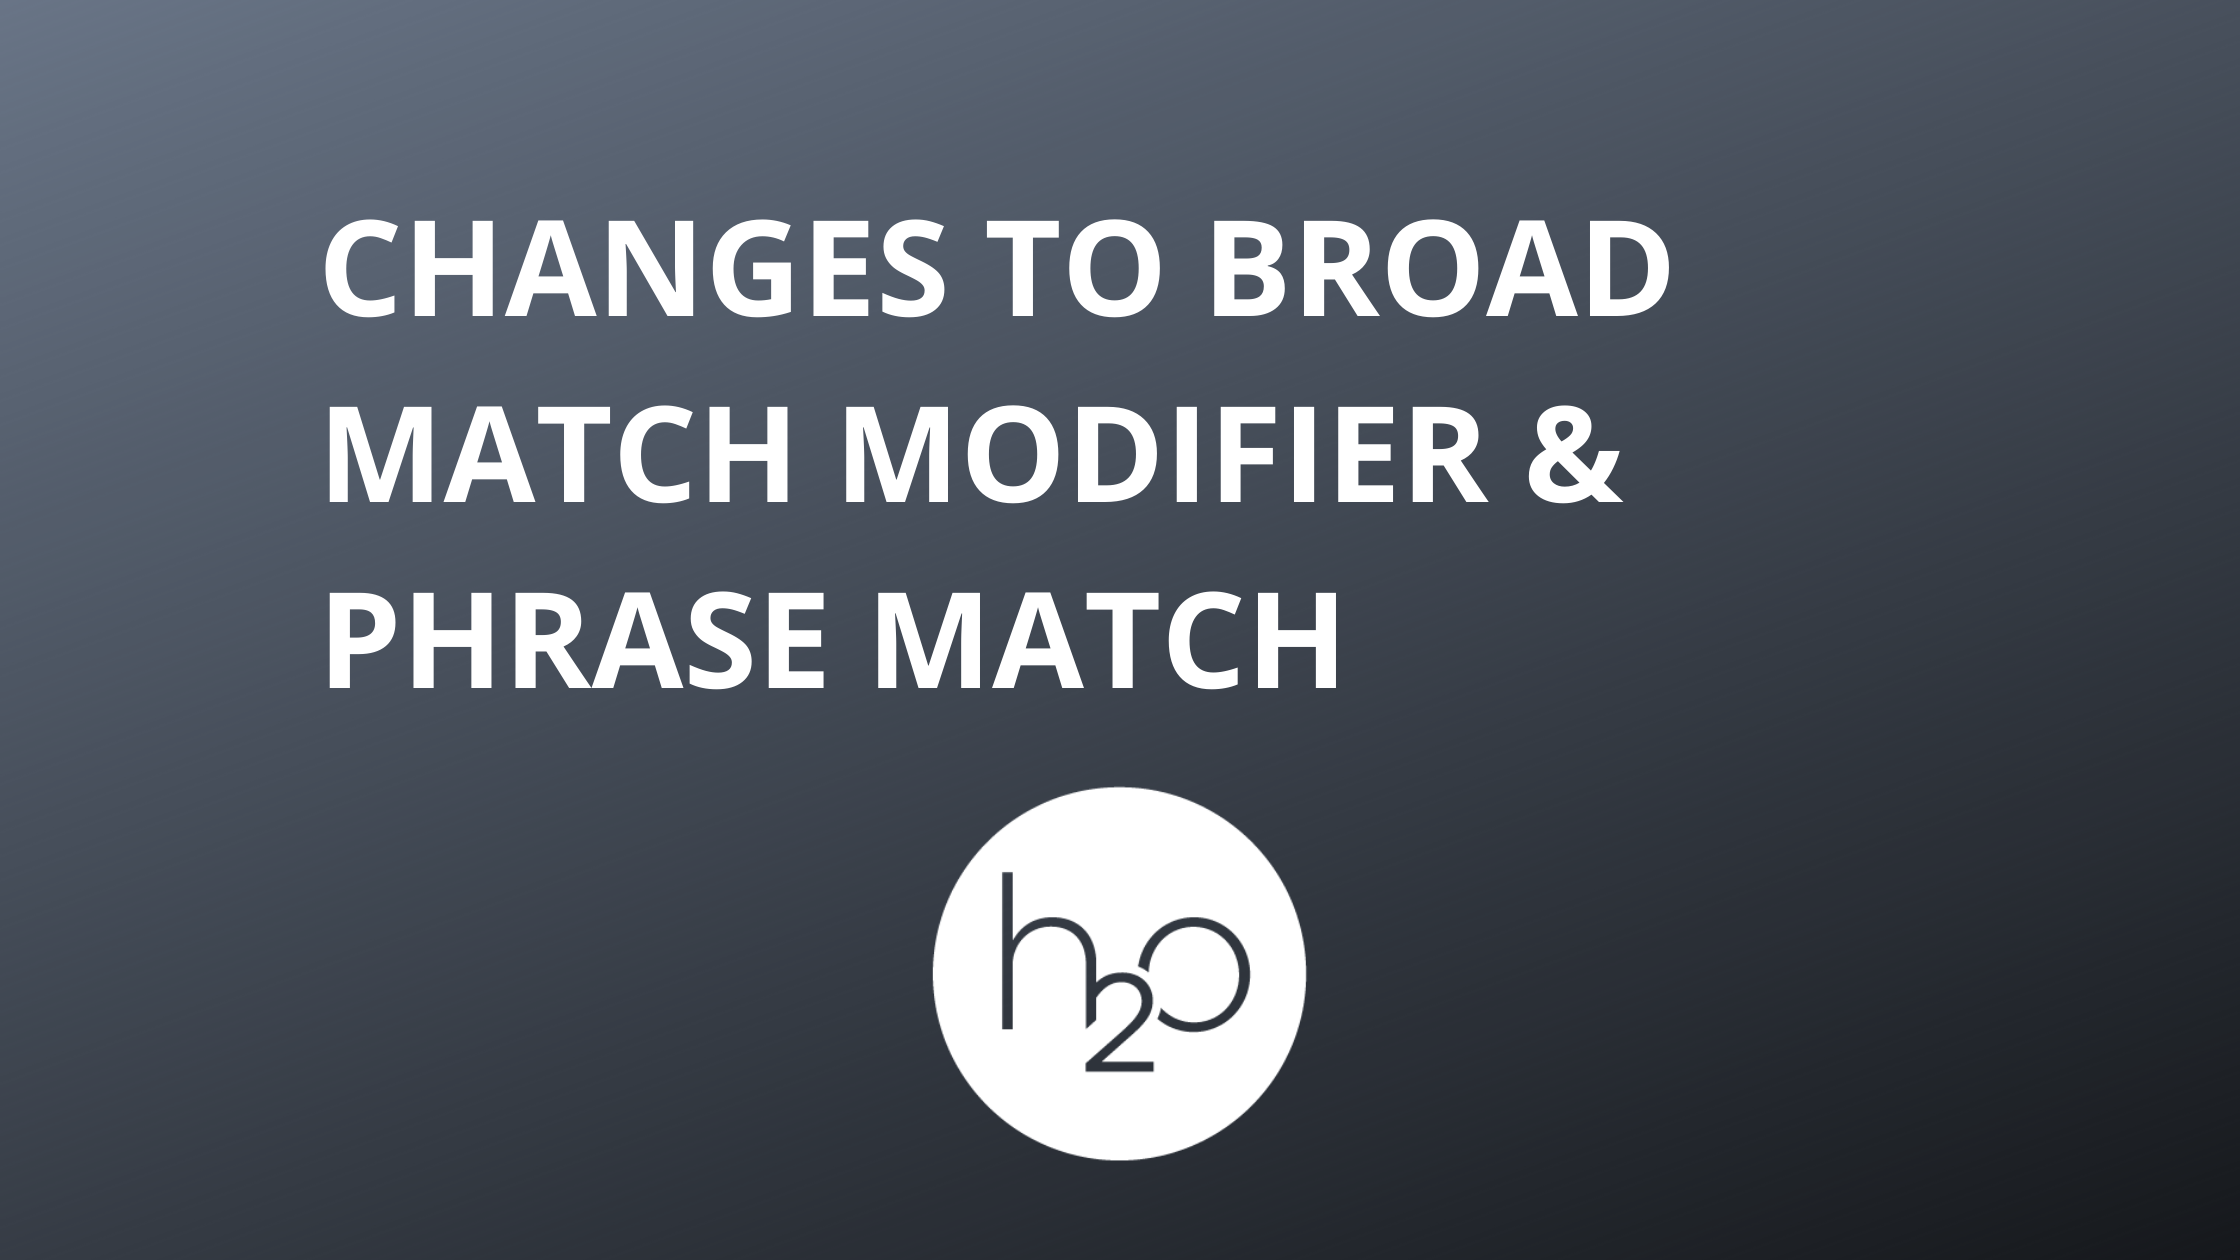 Changes to Broad Match Modifier & Phrase Match